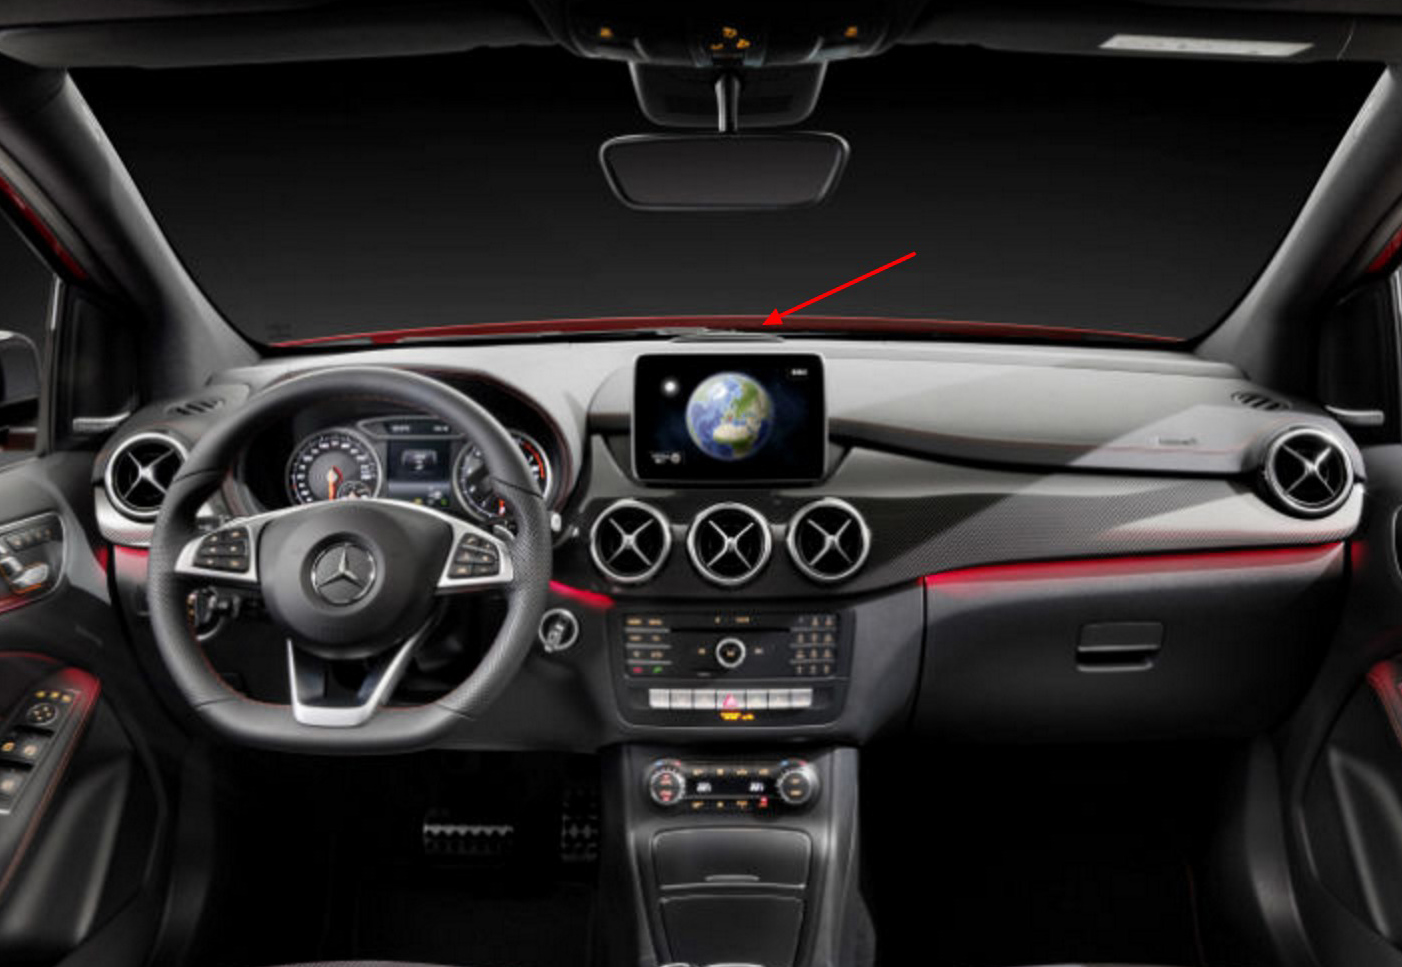 What Is The Thing On The Dashboard In The Cla